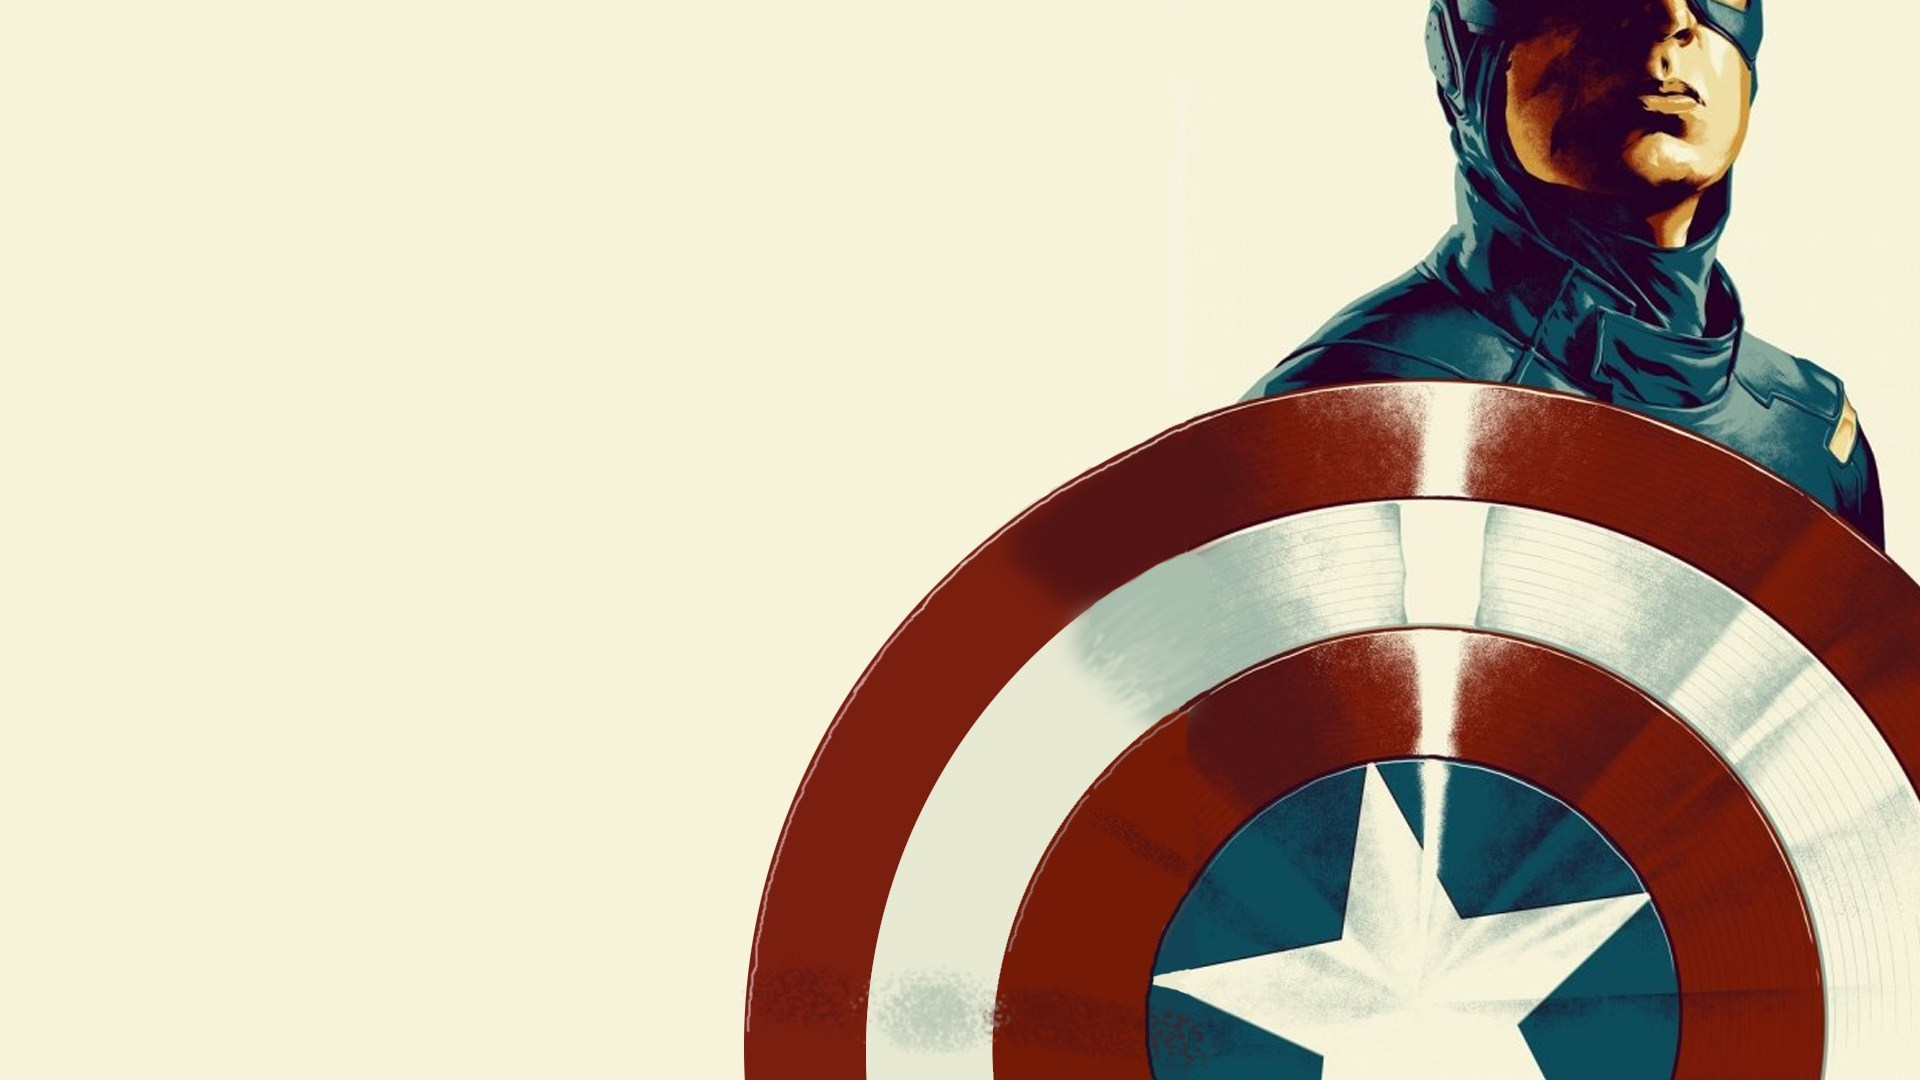 Hd wallpaper of captain america - Captain America Hd Wallpapers